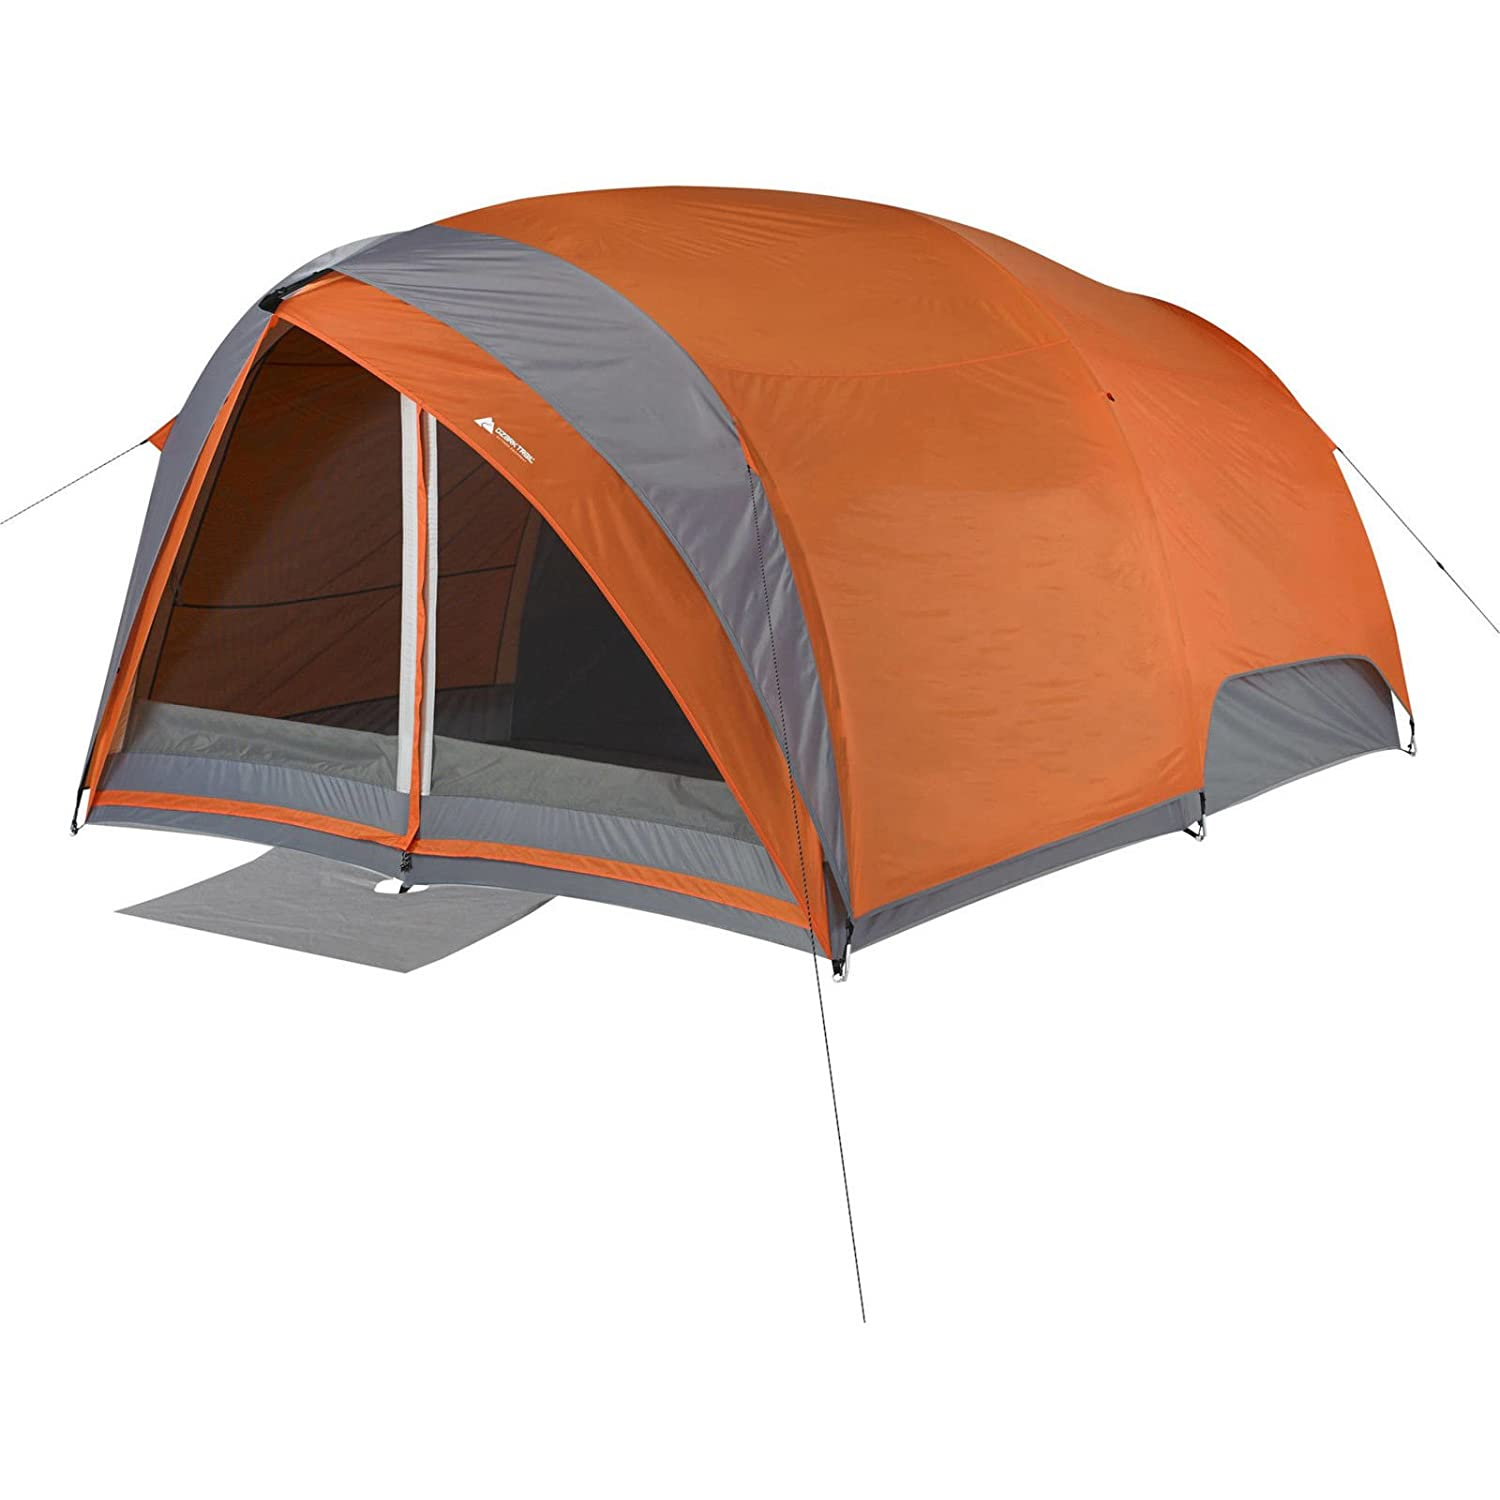 Ozark Trail 8-Person Dome Tunnel Tent With Full Fly For maximum Weather Protection